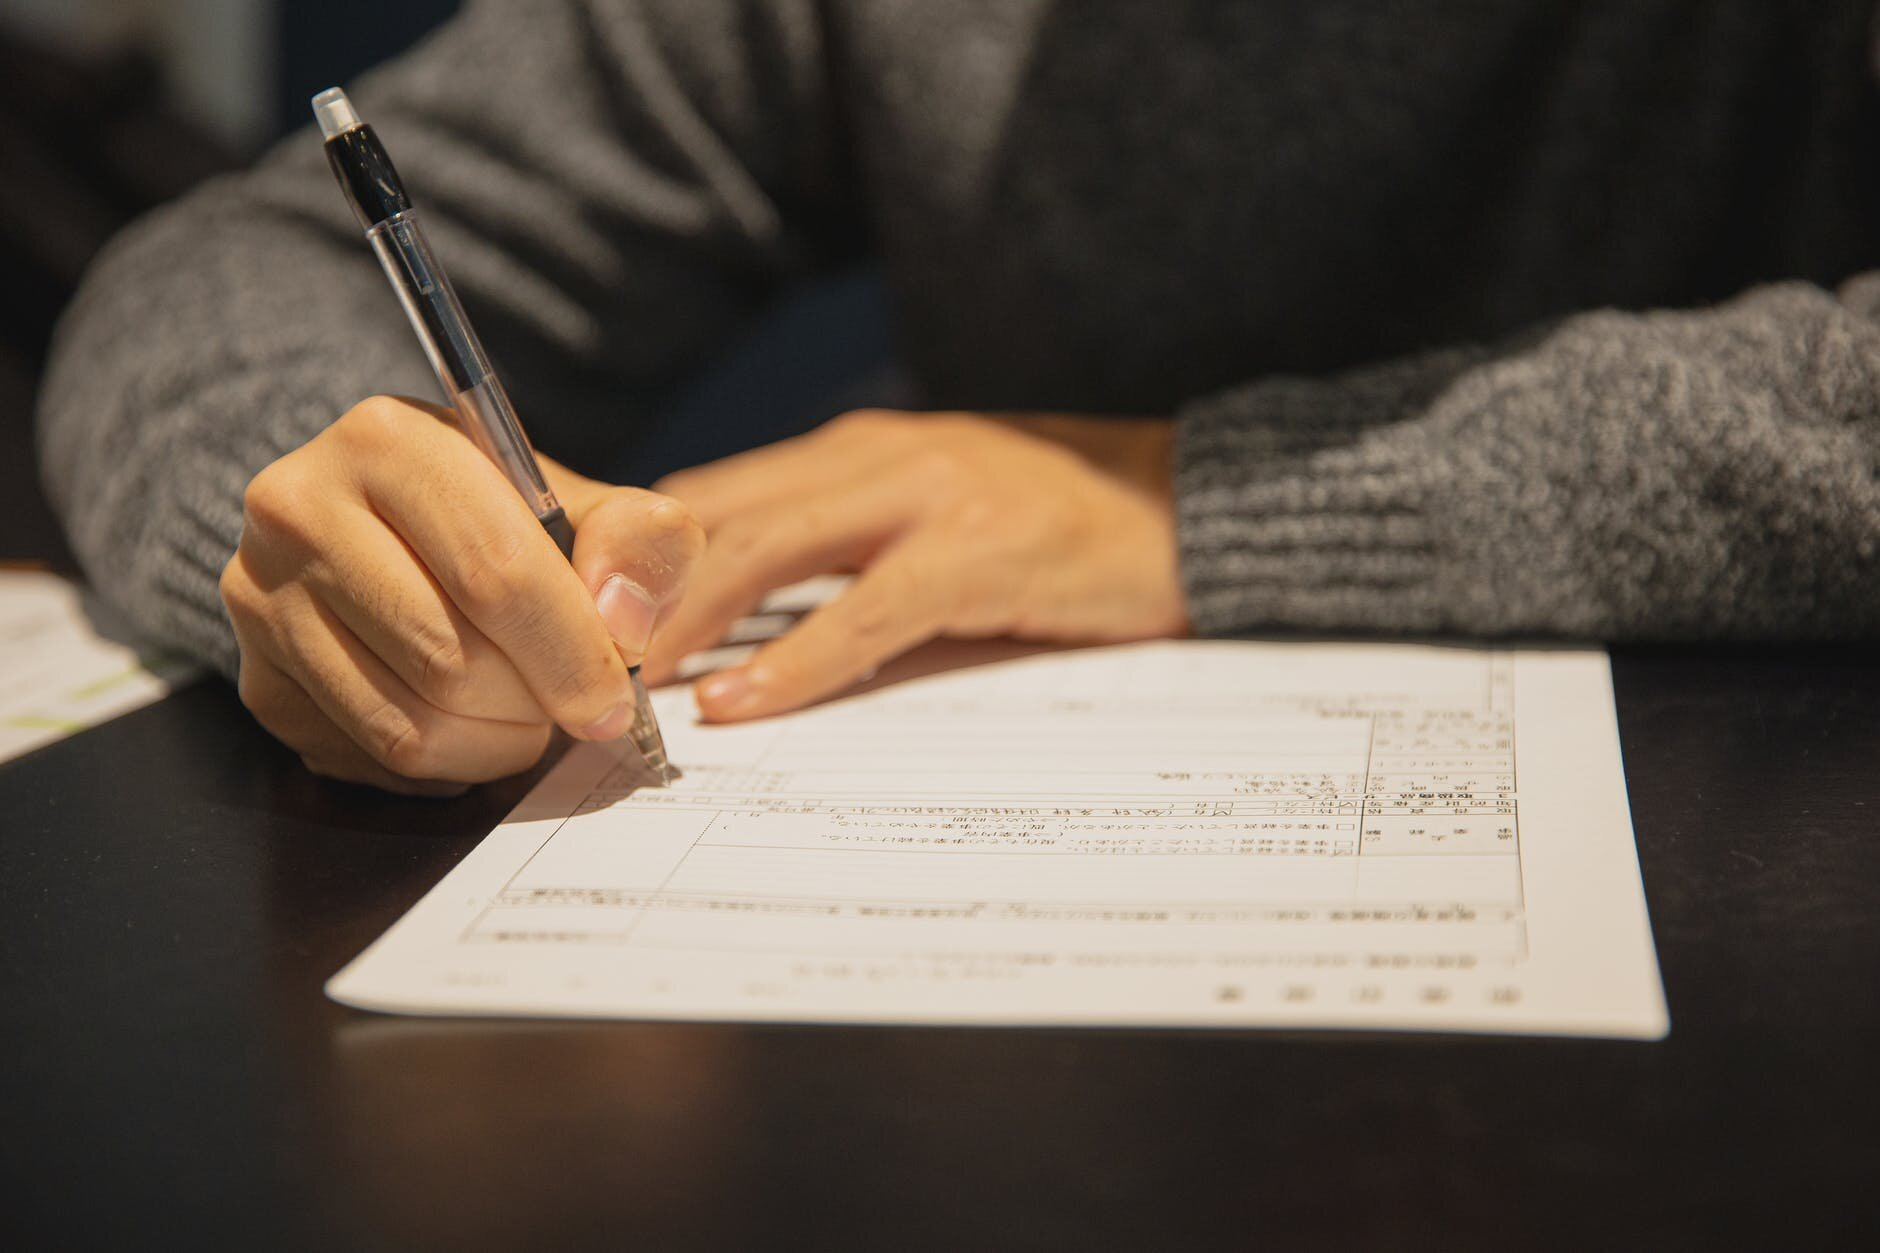 man filling in form on parer at table